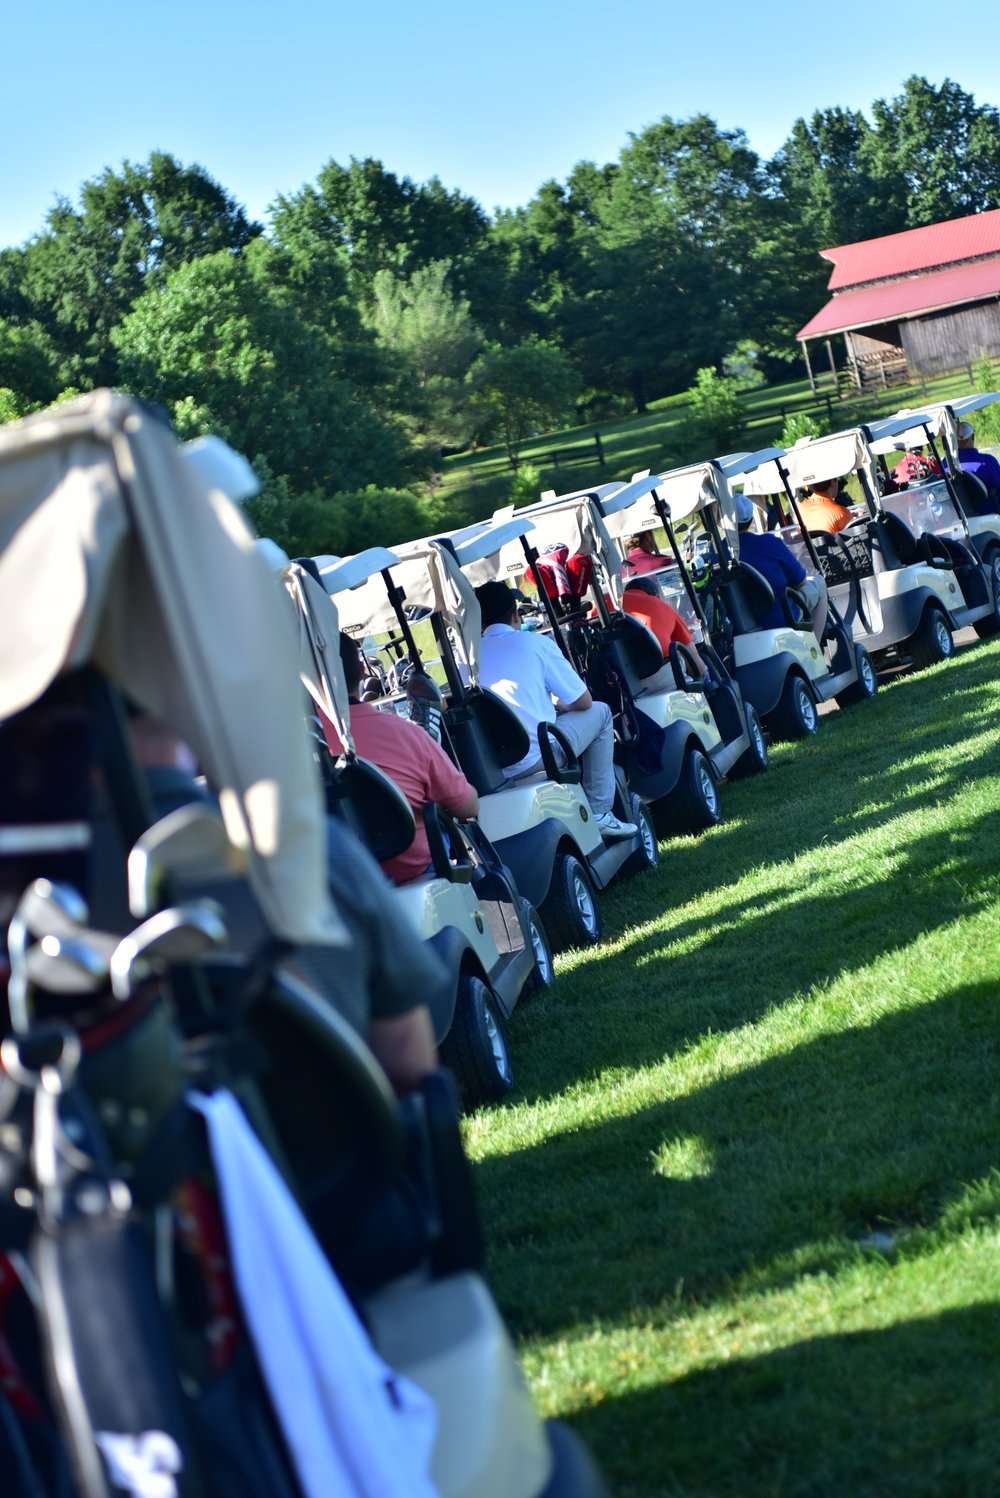 8th AnnualSheriff's PosseGolf Roundup - June 7, 2019 - Old Trail Golf Club in Crozet, VA.AM and PM flights available.$500 per team - Captain's Choice FormatFood and Entertainment included.Sign up today!